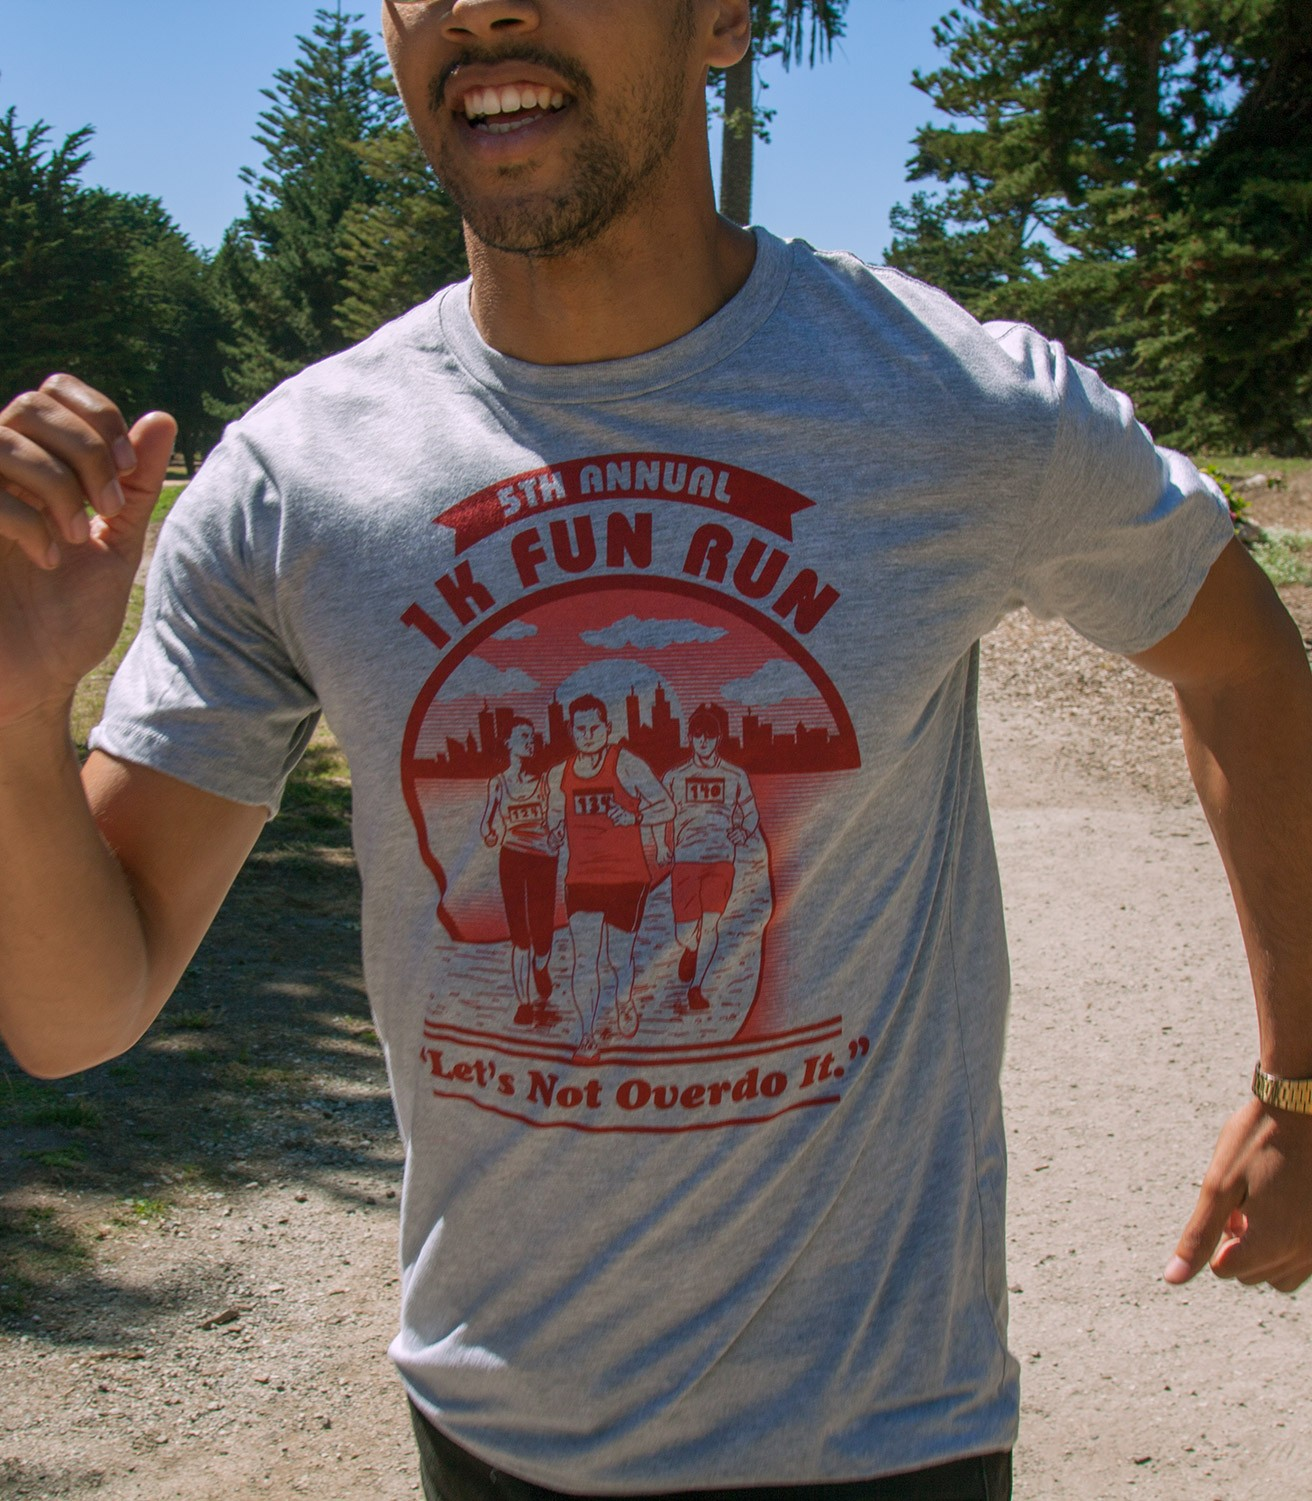 1k Fun Run Men 39 S Funny T Shirt Headline Shirts